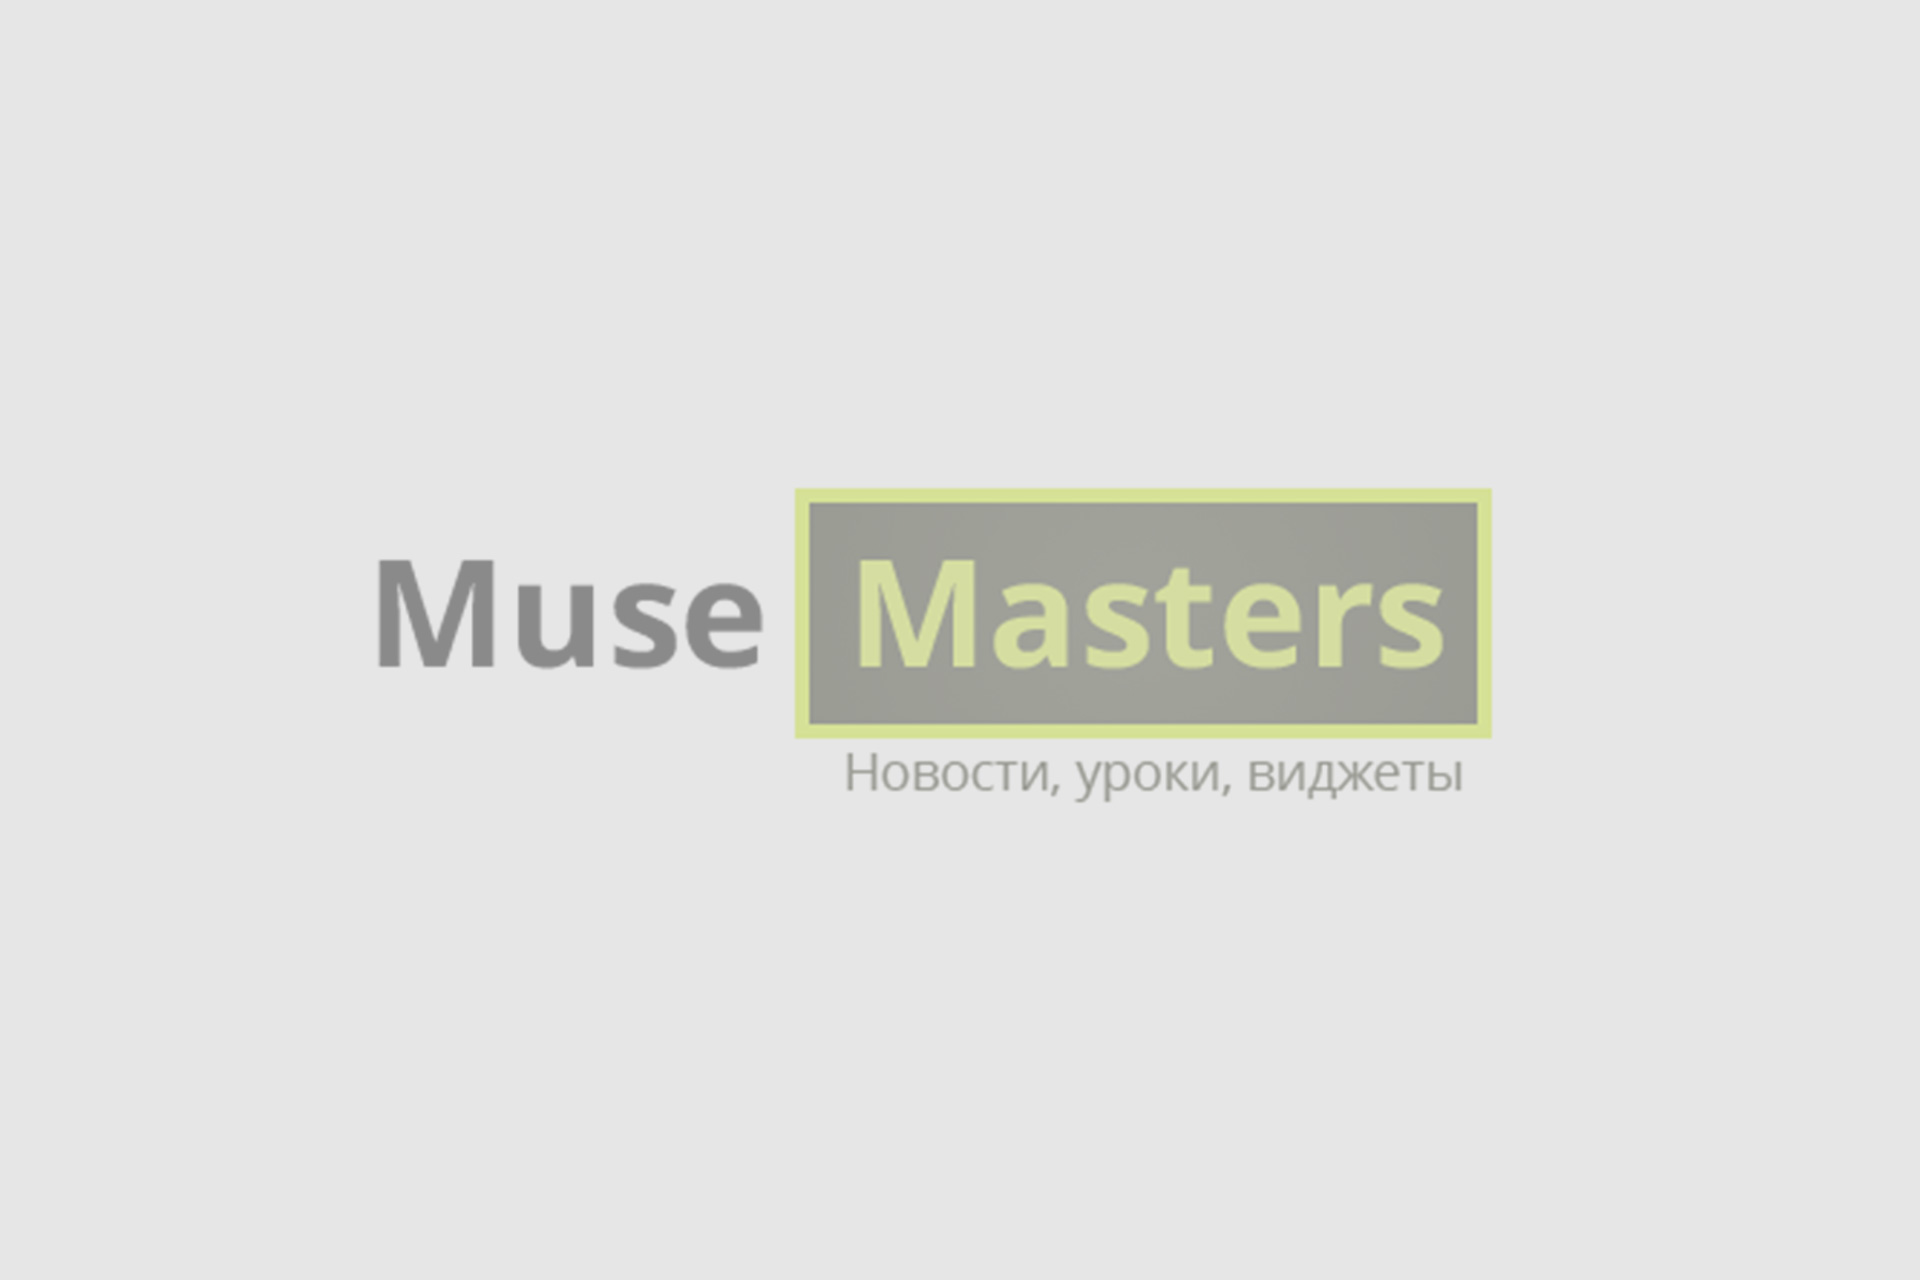 Видео фон для Adobe Muse — Background Video — ТОП 5